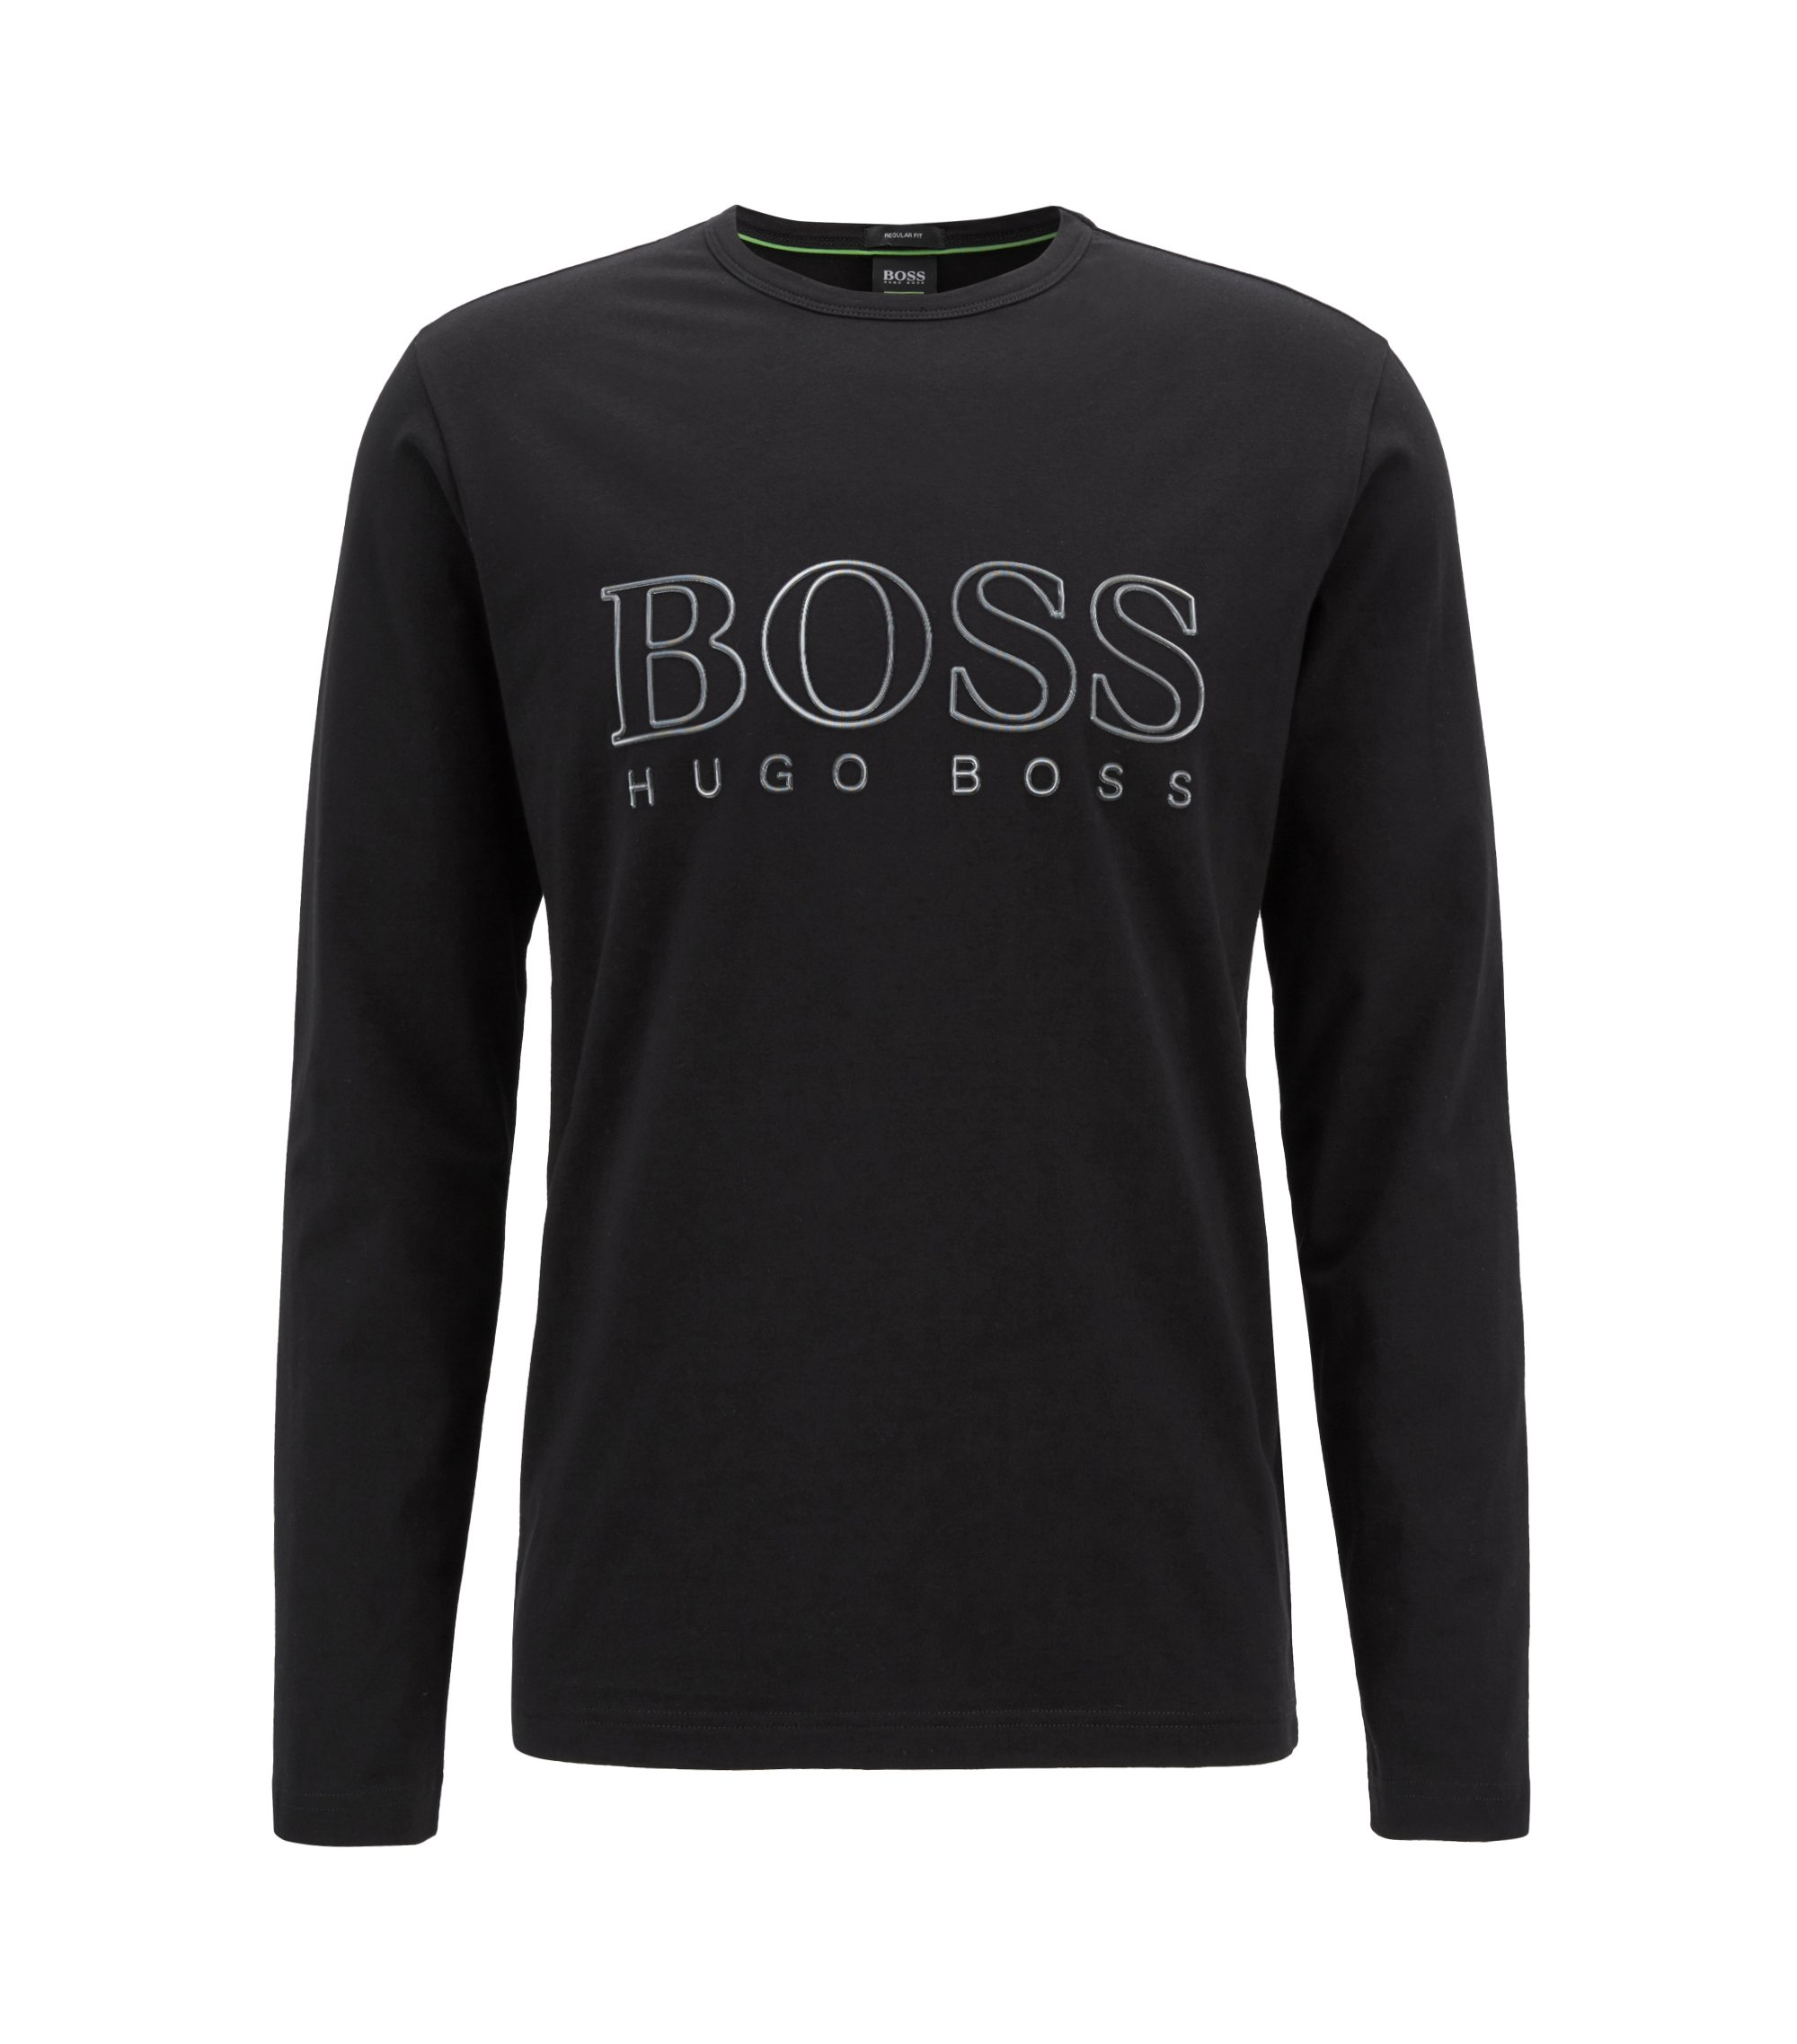 Long-sleeved T-shirt in stretch cotton with reflective logo, Black